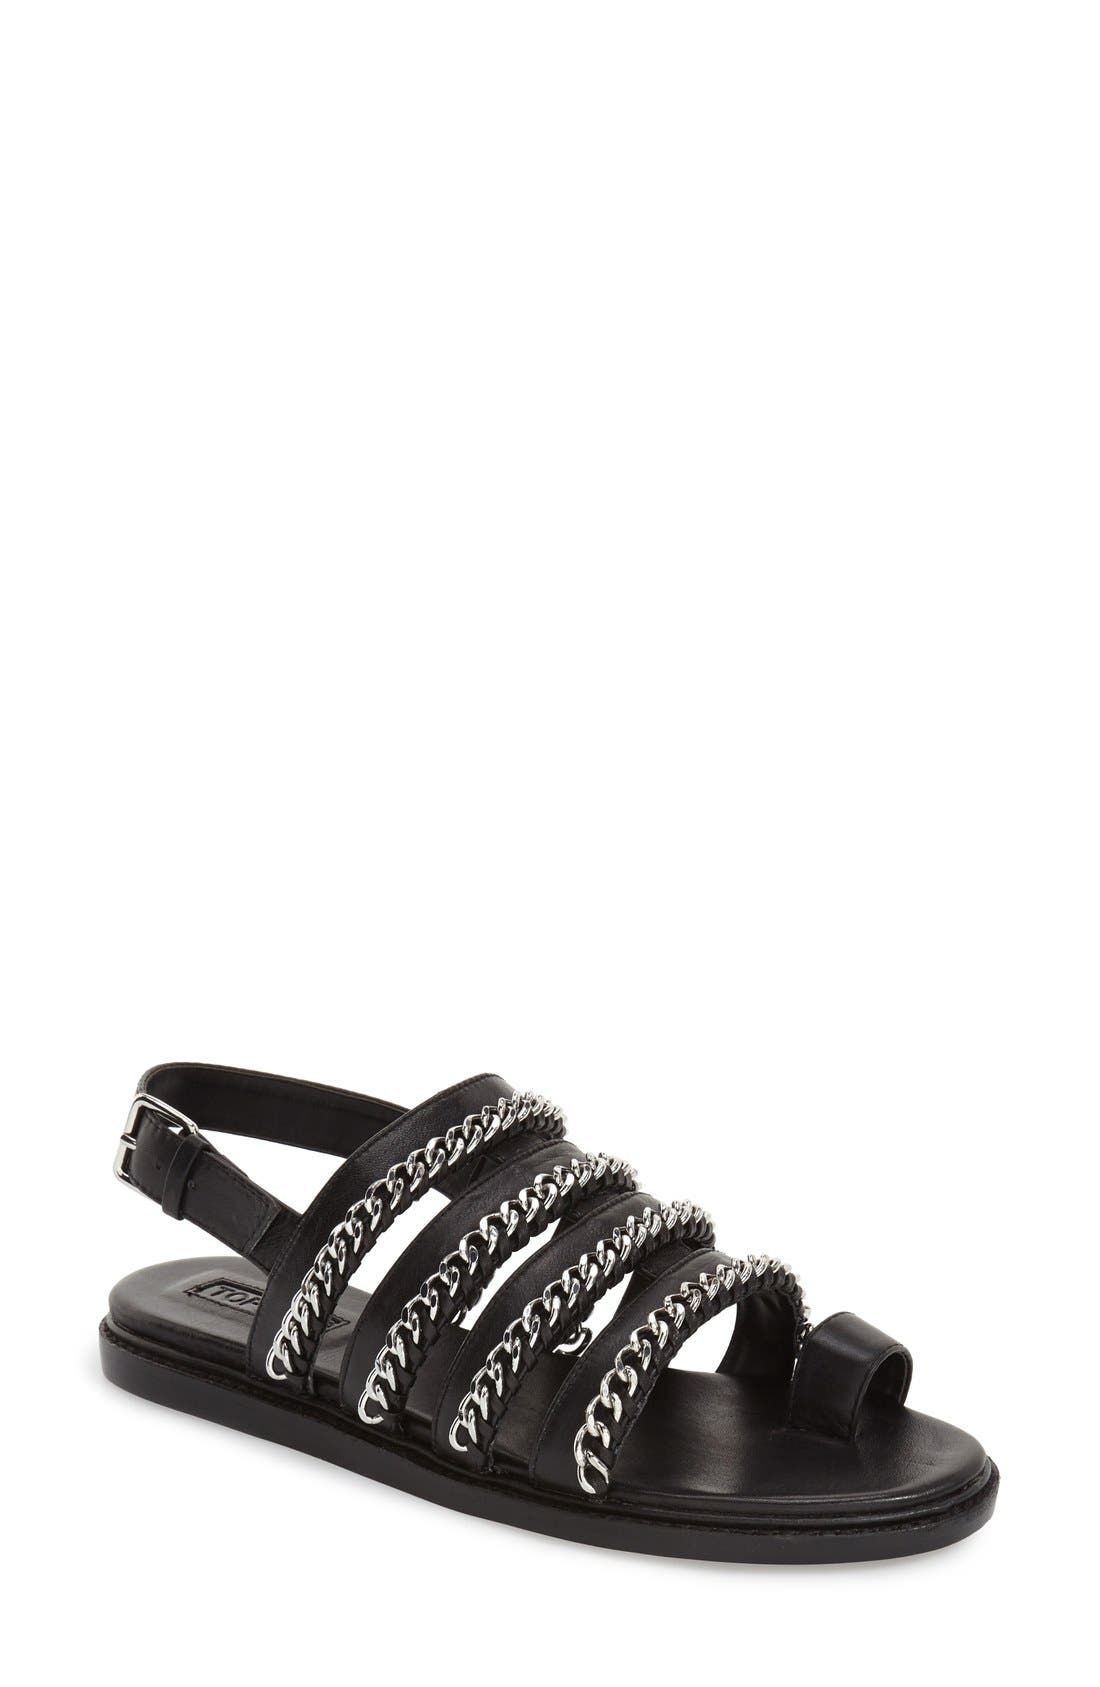 'Flying' Chain Strap Sandal,                         Main,                         color, 001